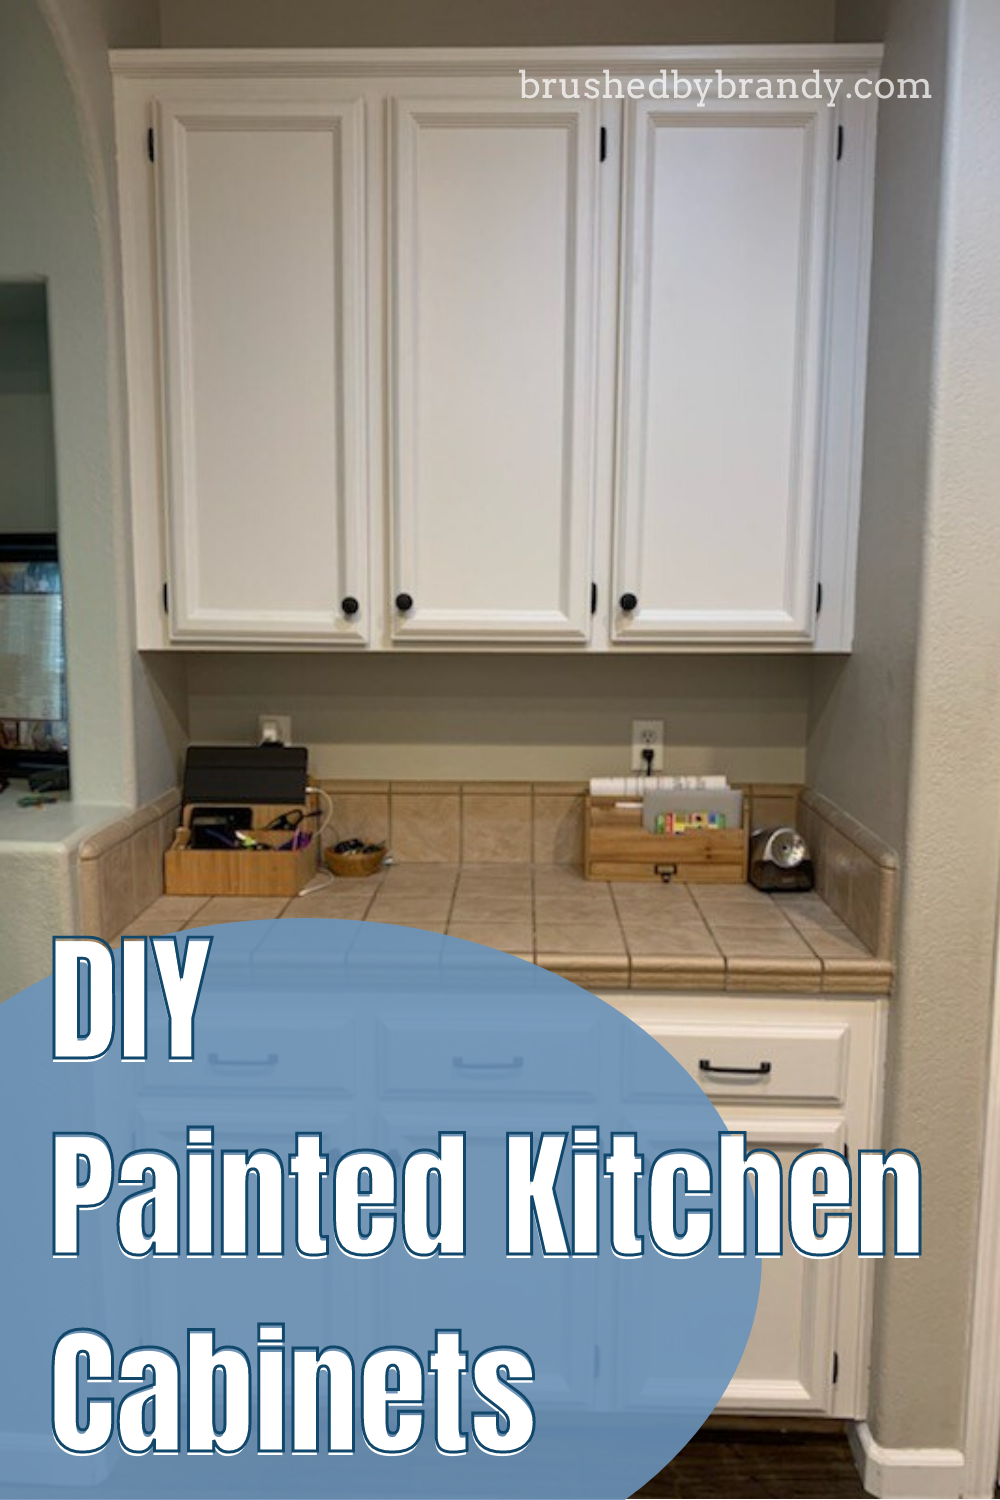 Diy Painted Kitchen Cabinet Makeover Learn How To Paint White With Brushed By Brandy In 2020 Diy Kitchen Cabinets Painting Kitchen Paint Kitchen Cabinets